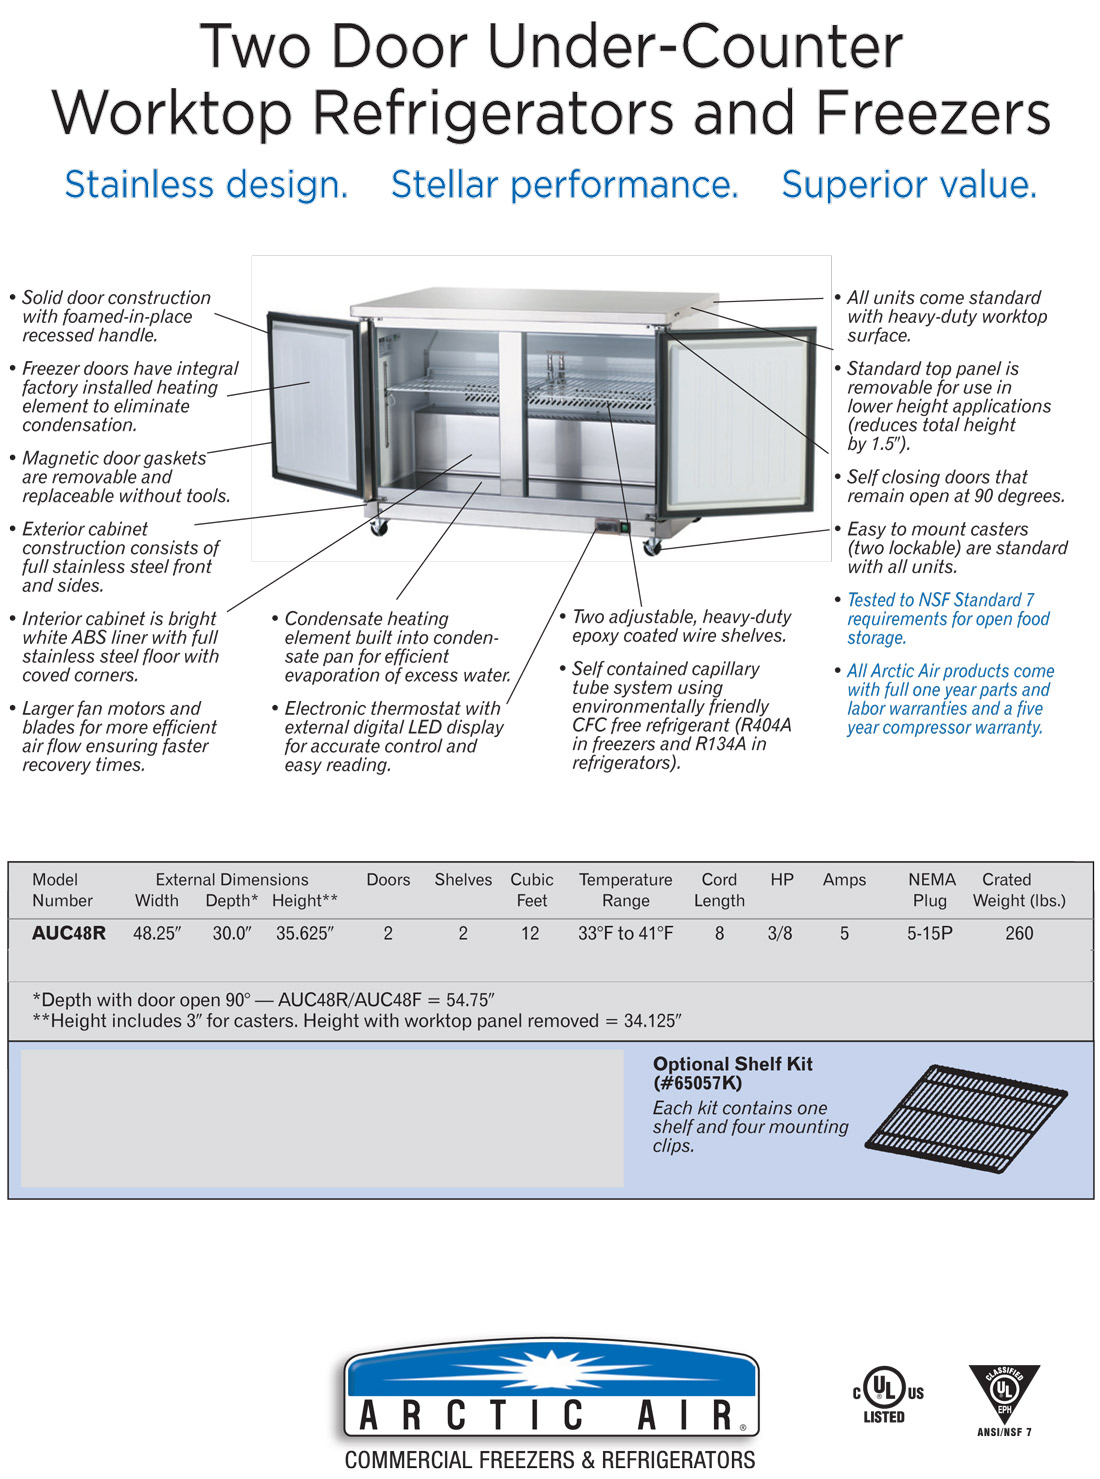 Arctic Air AUC48R 2-Door Undercounter Refrigerator Specifications Diagram